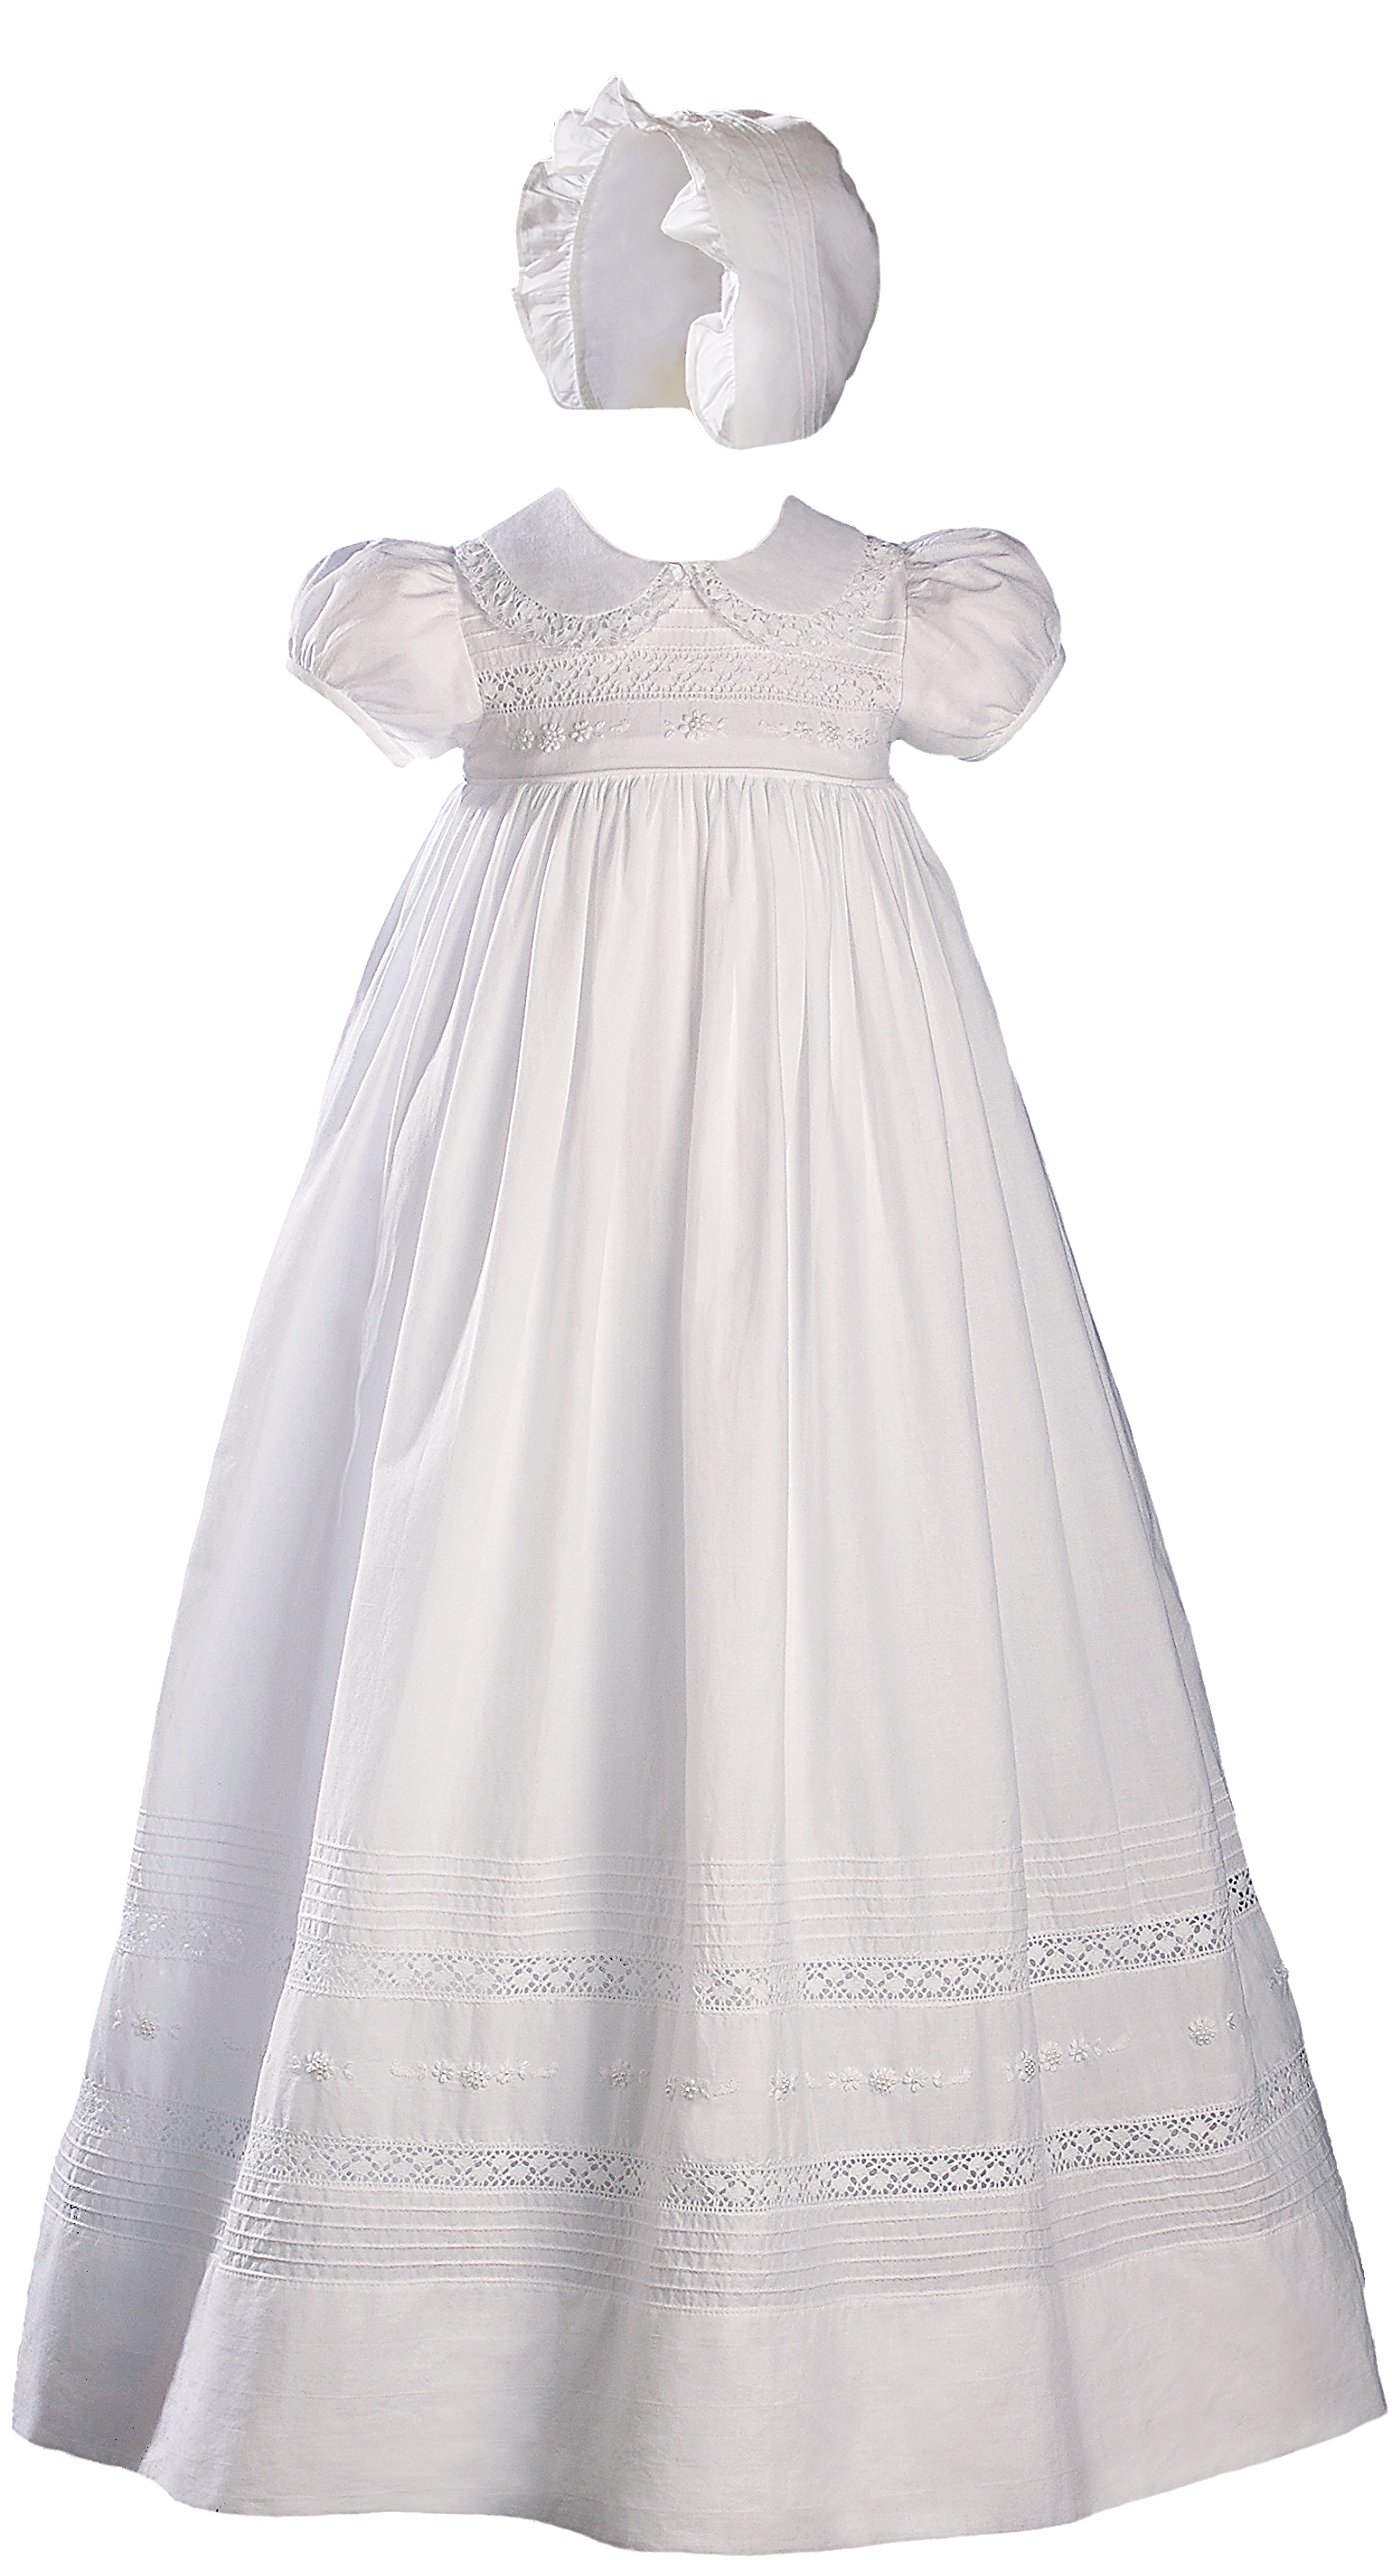 33'' White Cotton Short Sleeve Christening Gown Baptism Gown with Hand Embroidery 3M